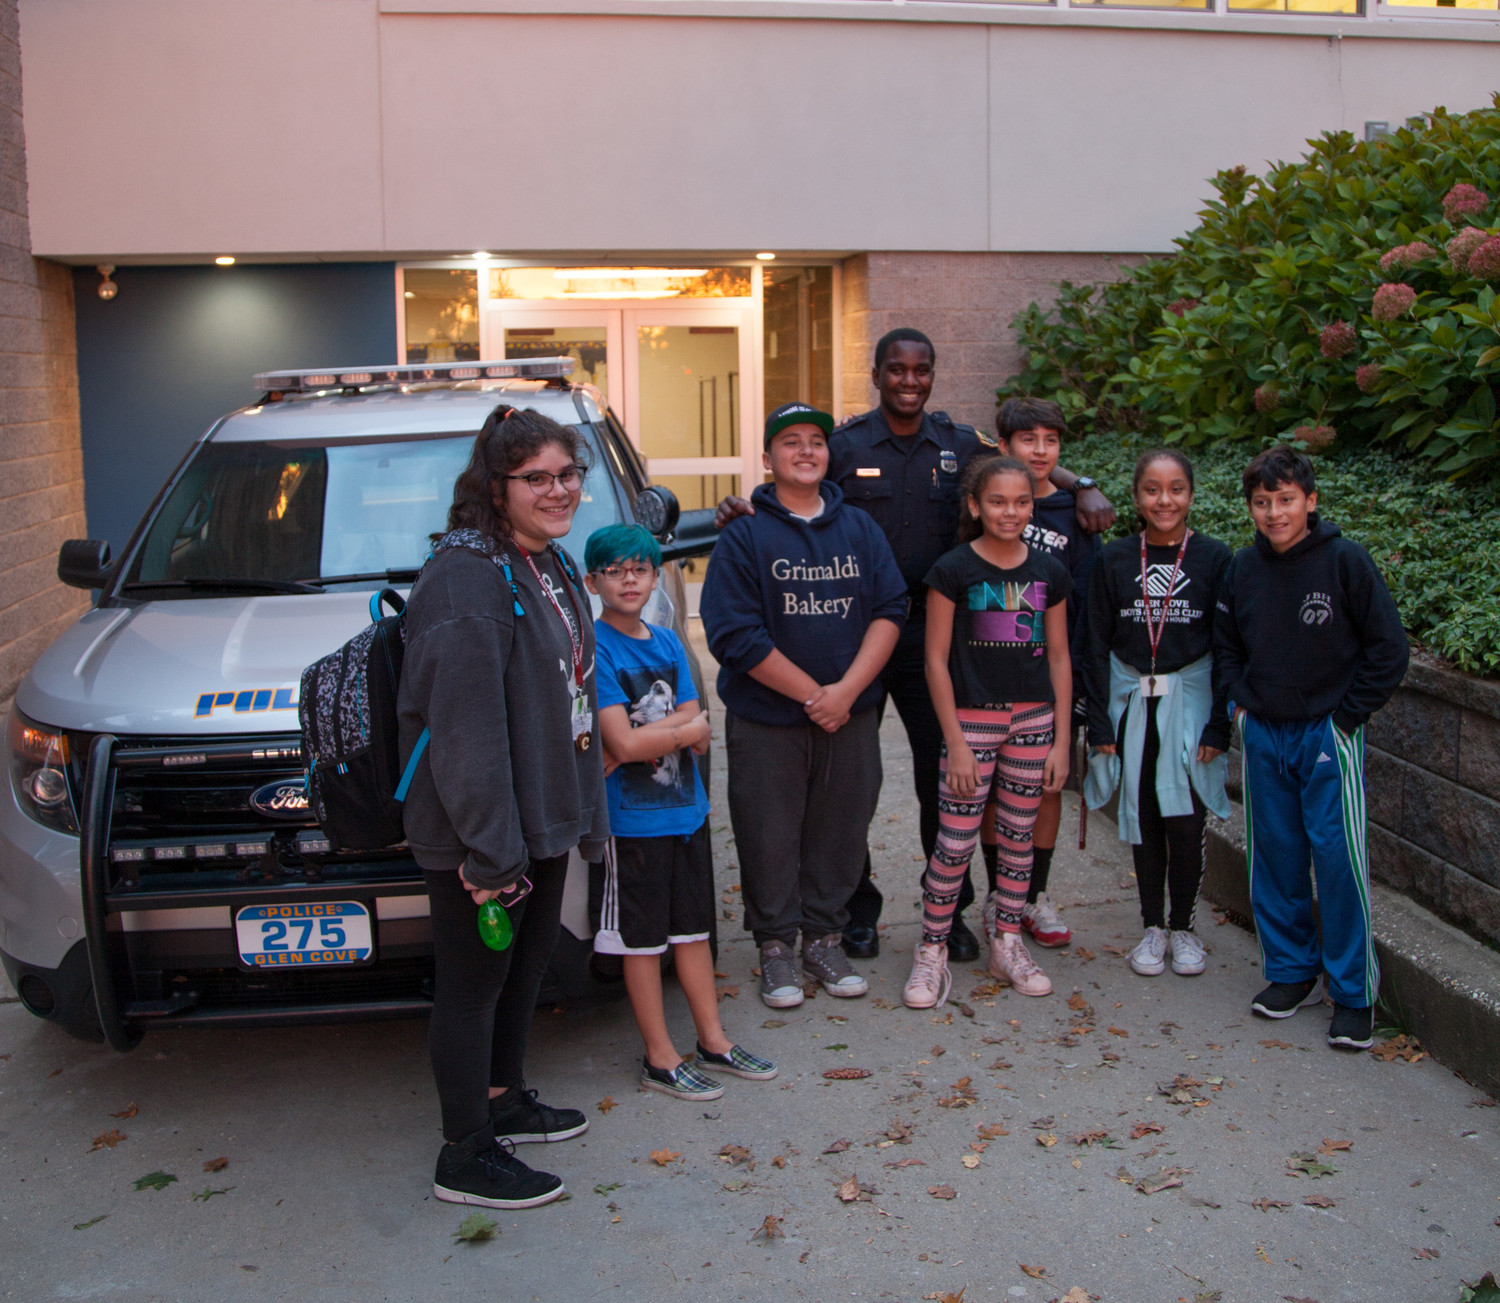 Glen Cove Police Officer Pittman showed the kids a police vehicle at the GCB&GC Lights on Afterschool event on Oct. 26.